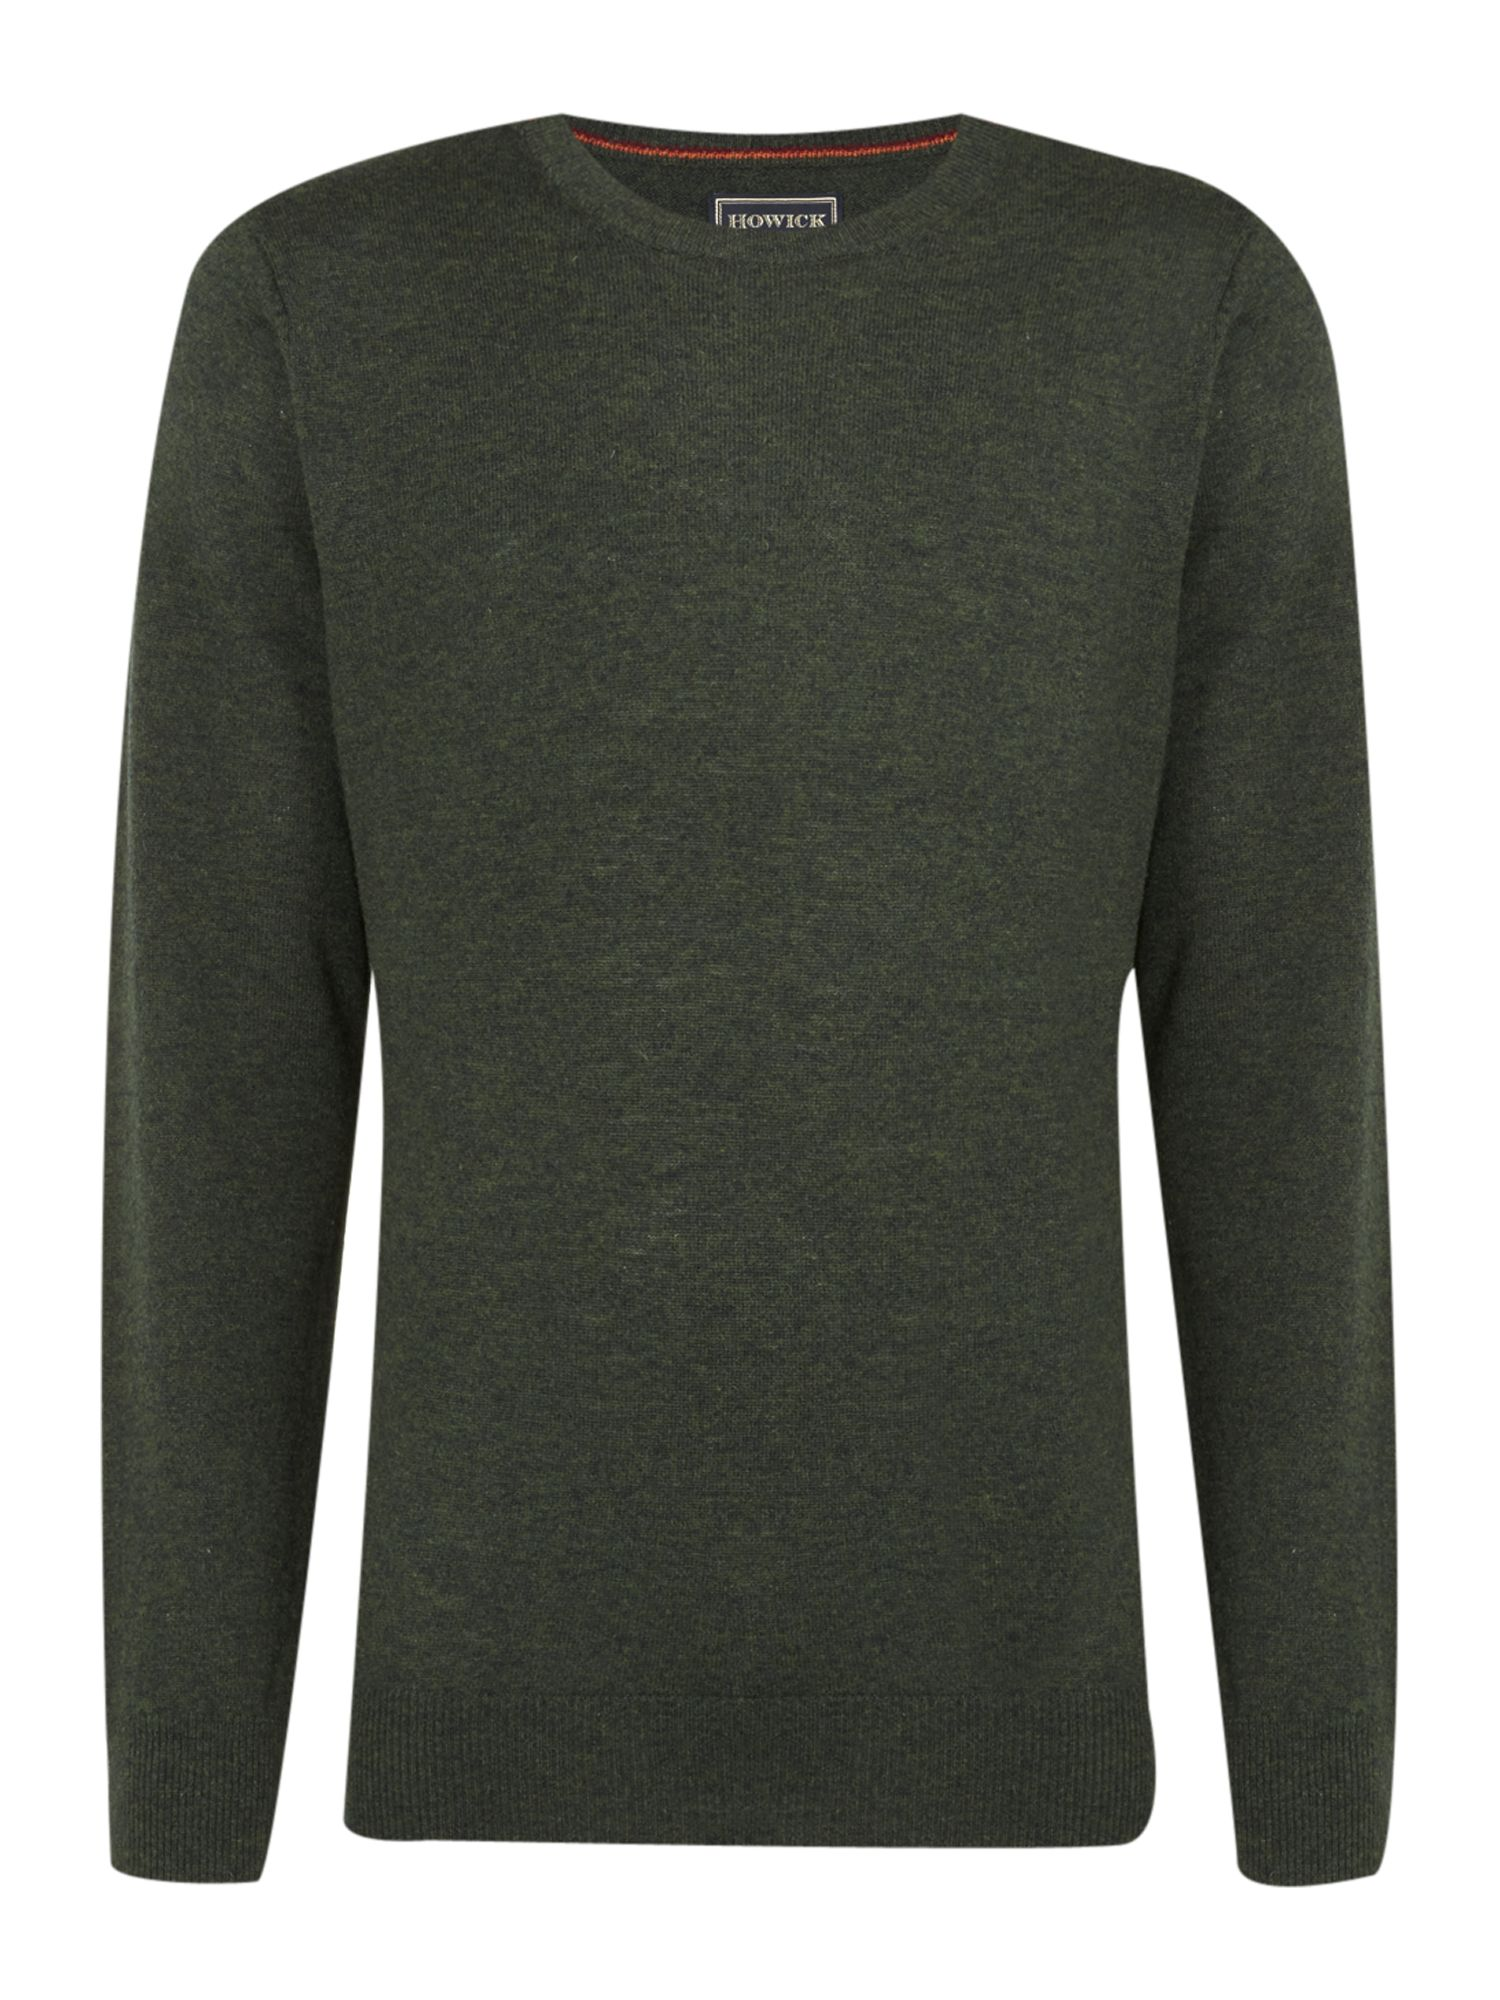 The arlington crew neck jumper